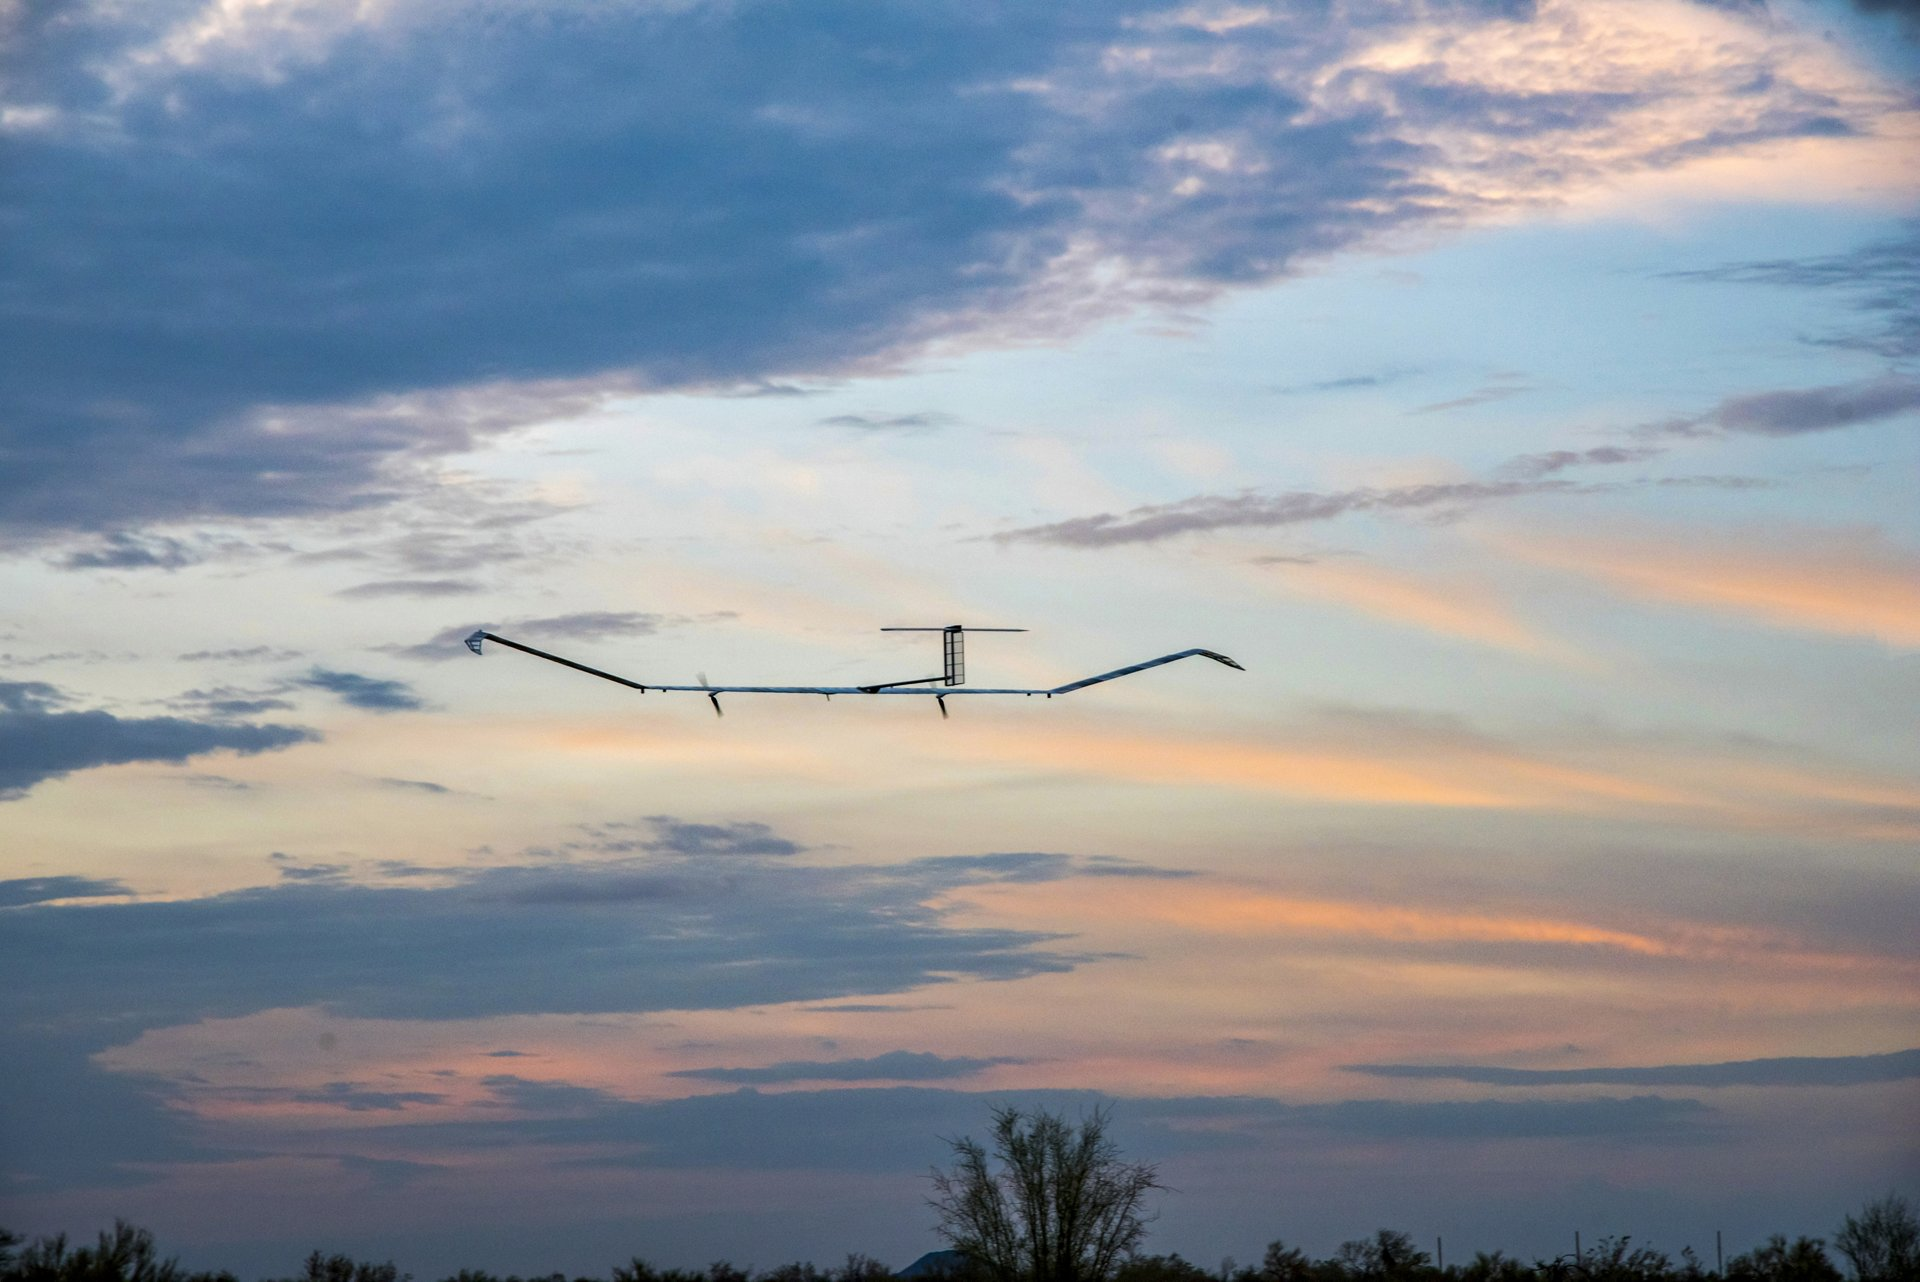 Zephyr is a High Altitude Pseudo-Satellite (HAPS) UAS/UAV which runs on solar power. This unmanned aircraft provides local satellite-like services. It endures like a satellite, focuses like an aircraft and is cheaper than either of them.